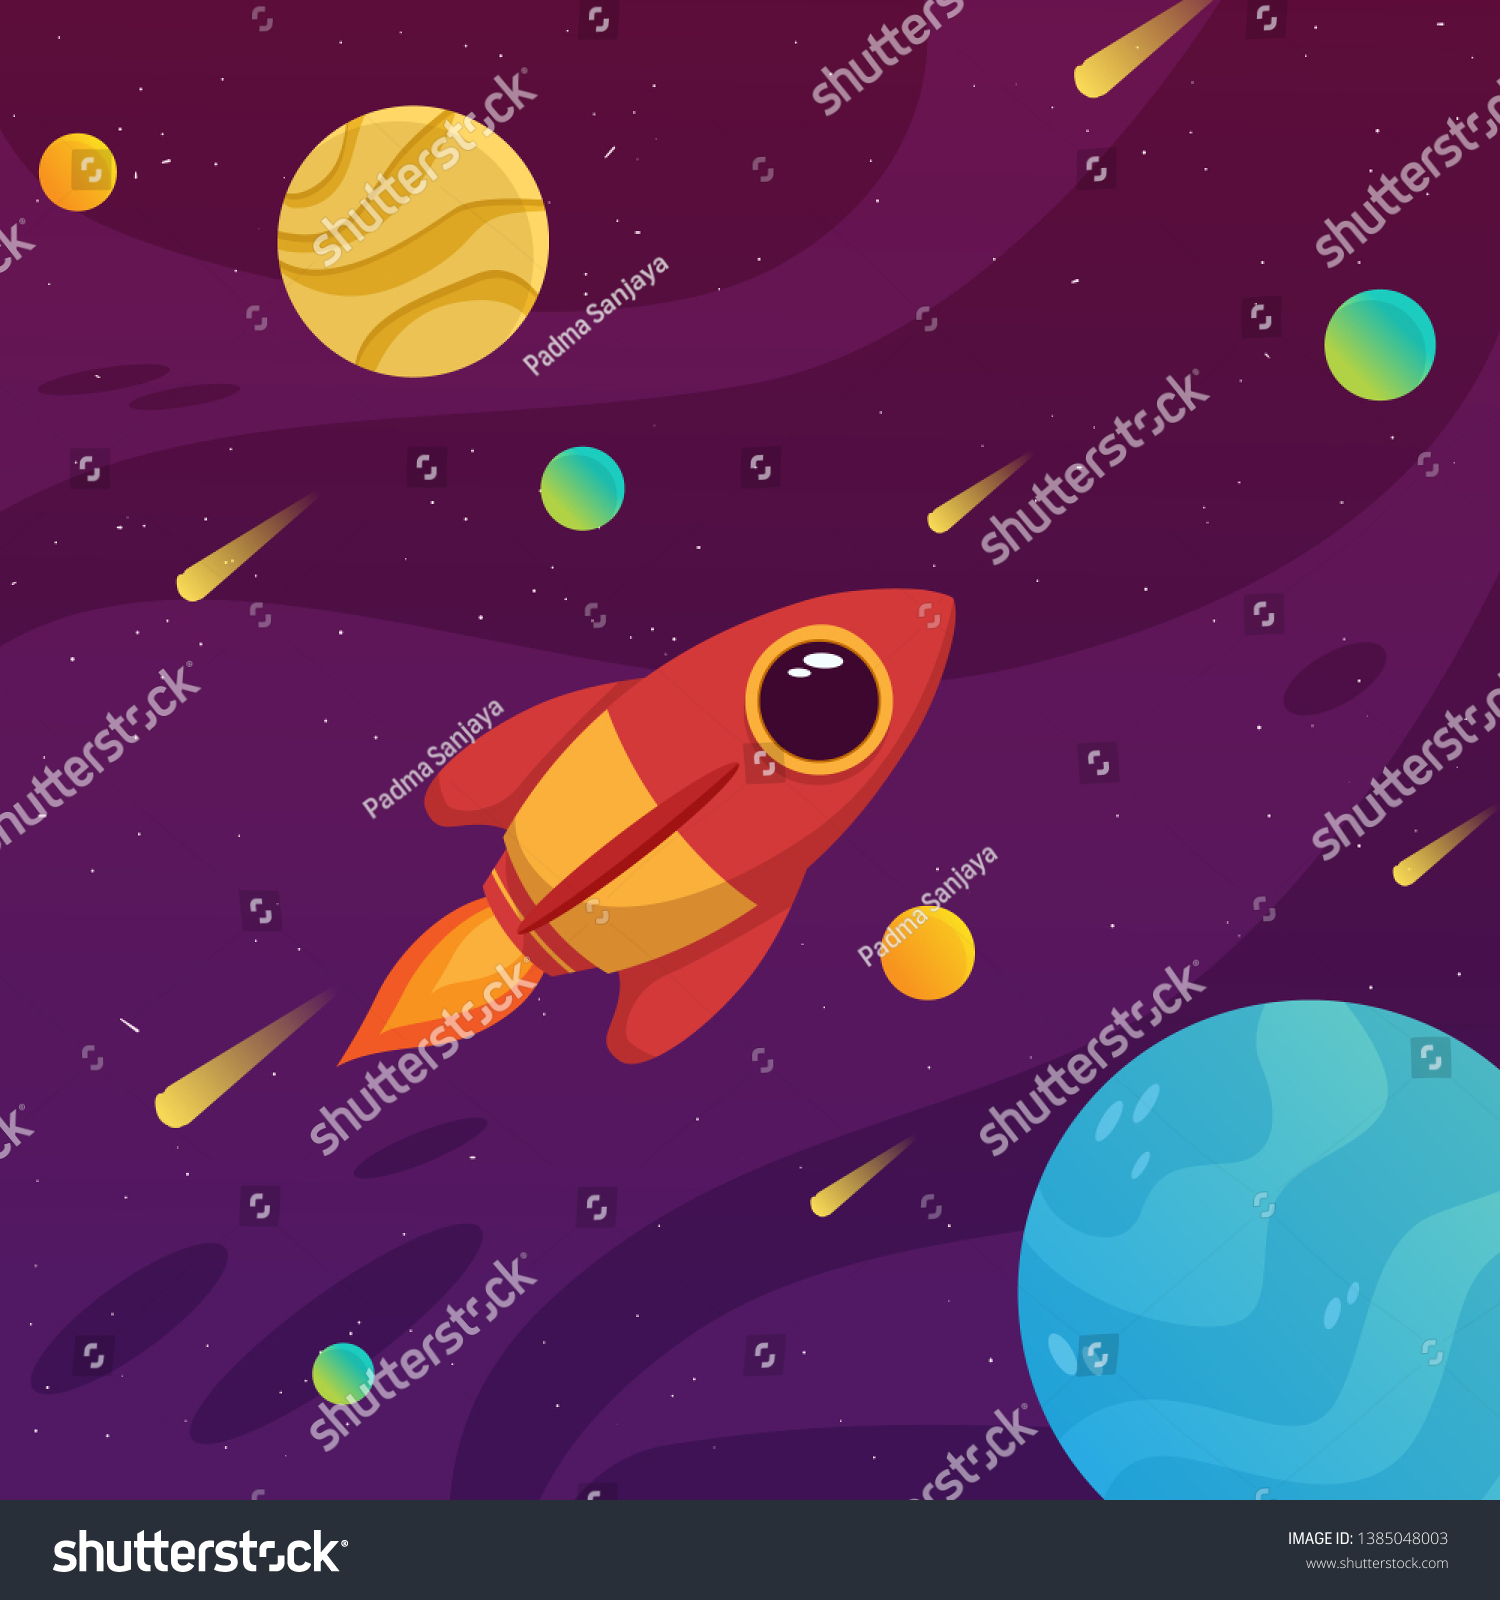 Cute Rocket Space Colorful Galaxy Planet Stock Vector Royalty Free 1385048003